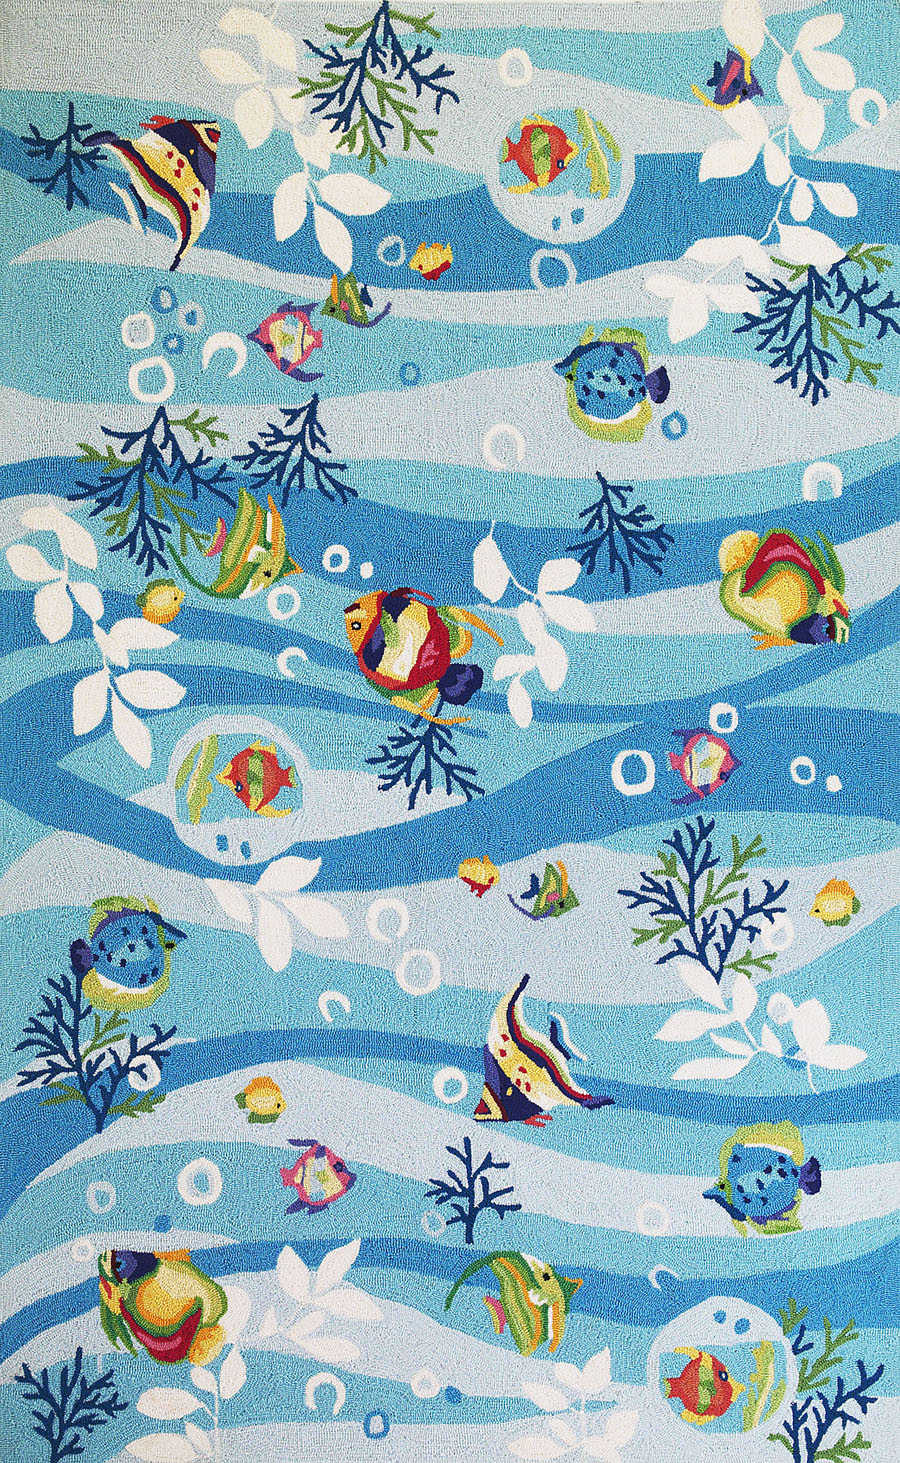 Sonesta 2011 Blue Tropical Fish Rug by Kas